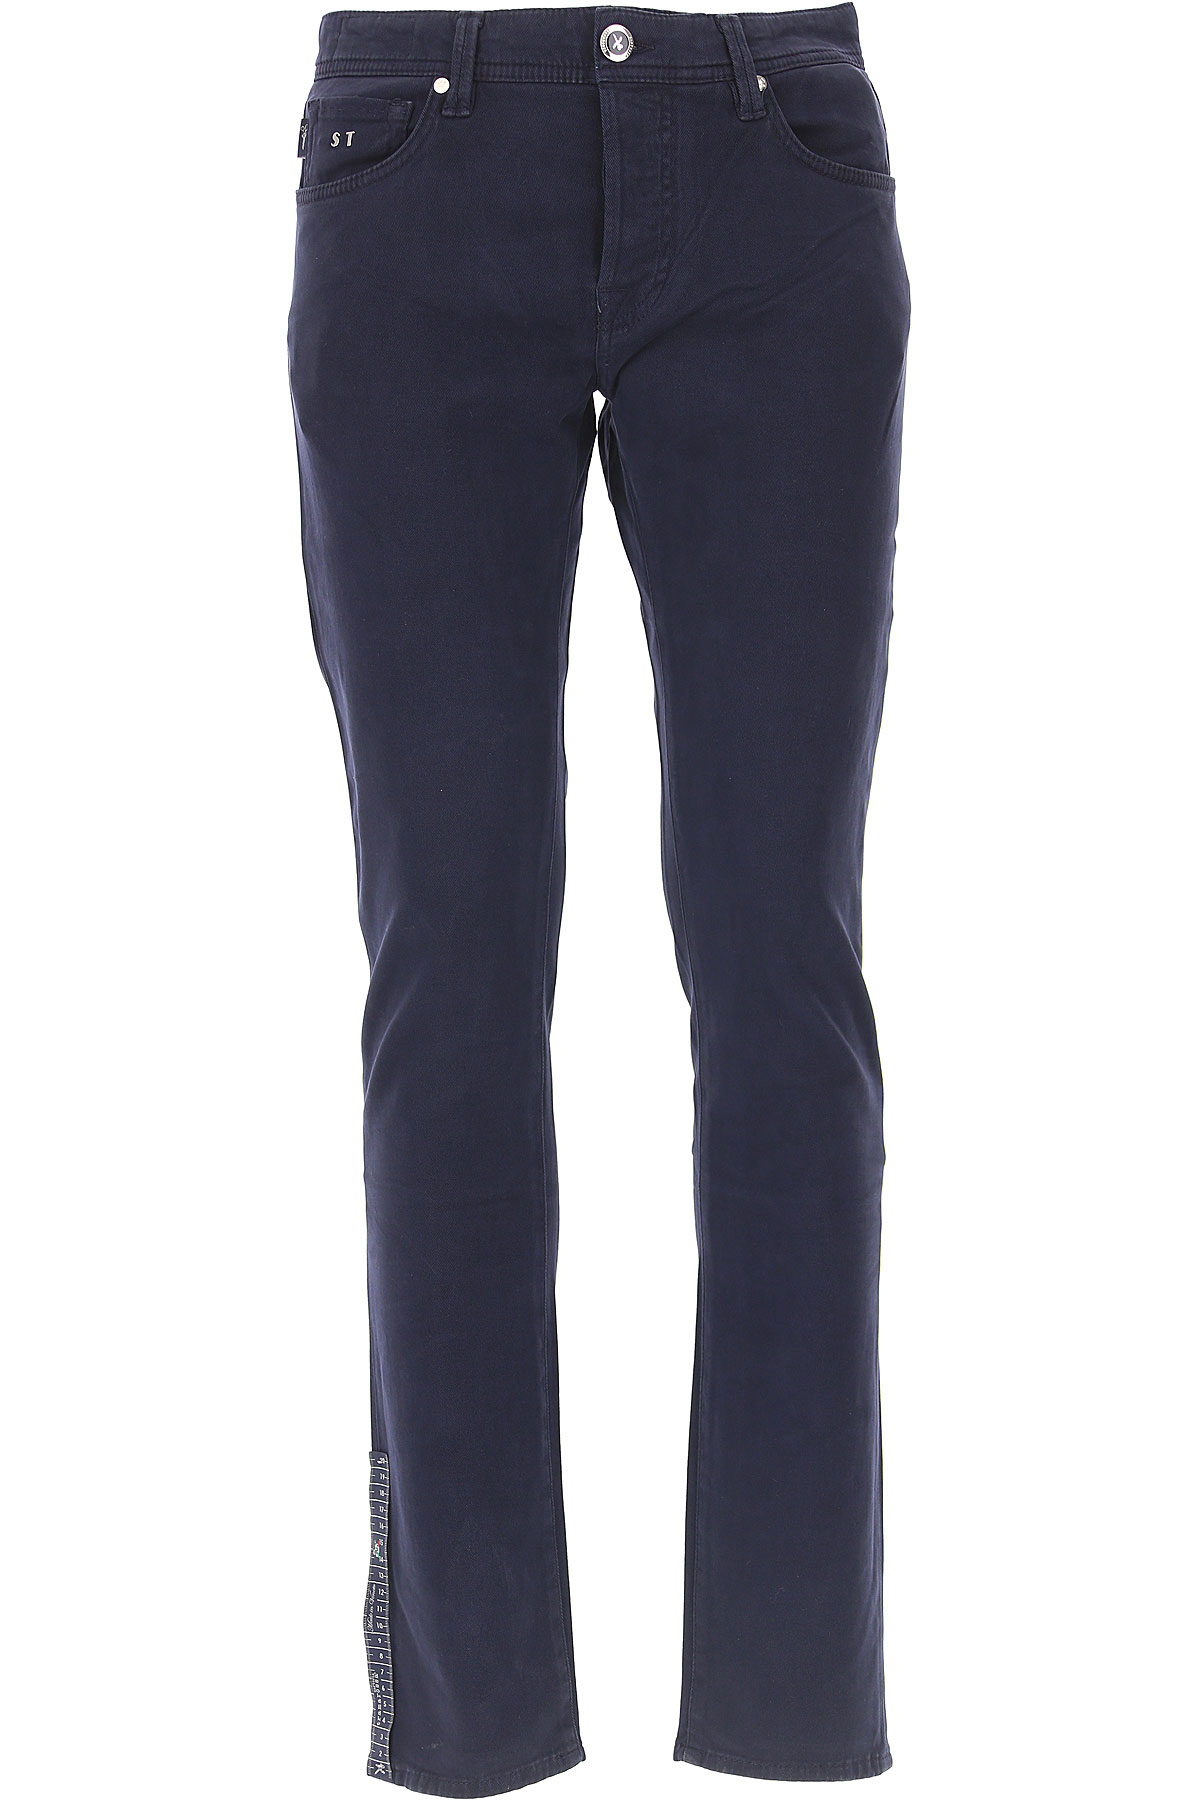 Tramarossa Jeans On Sale in Outlet, navy, Cotton, 2019, 31 34 35